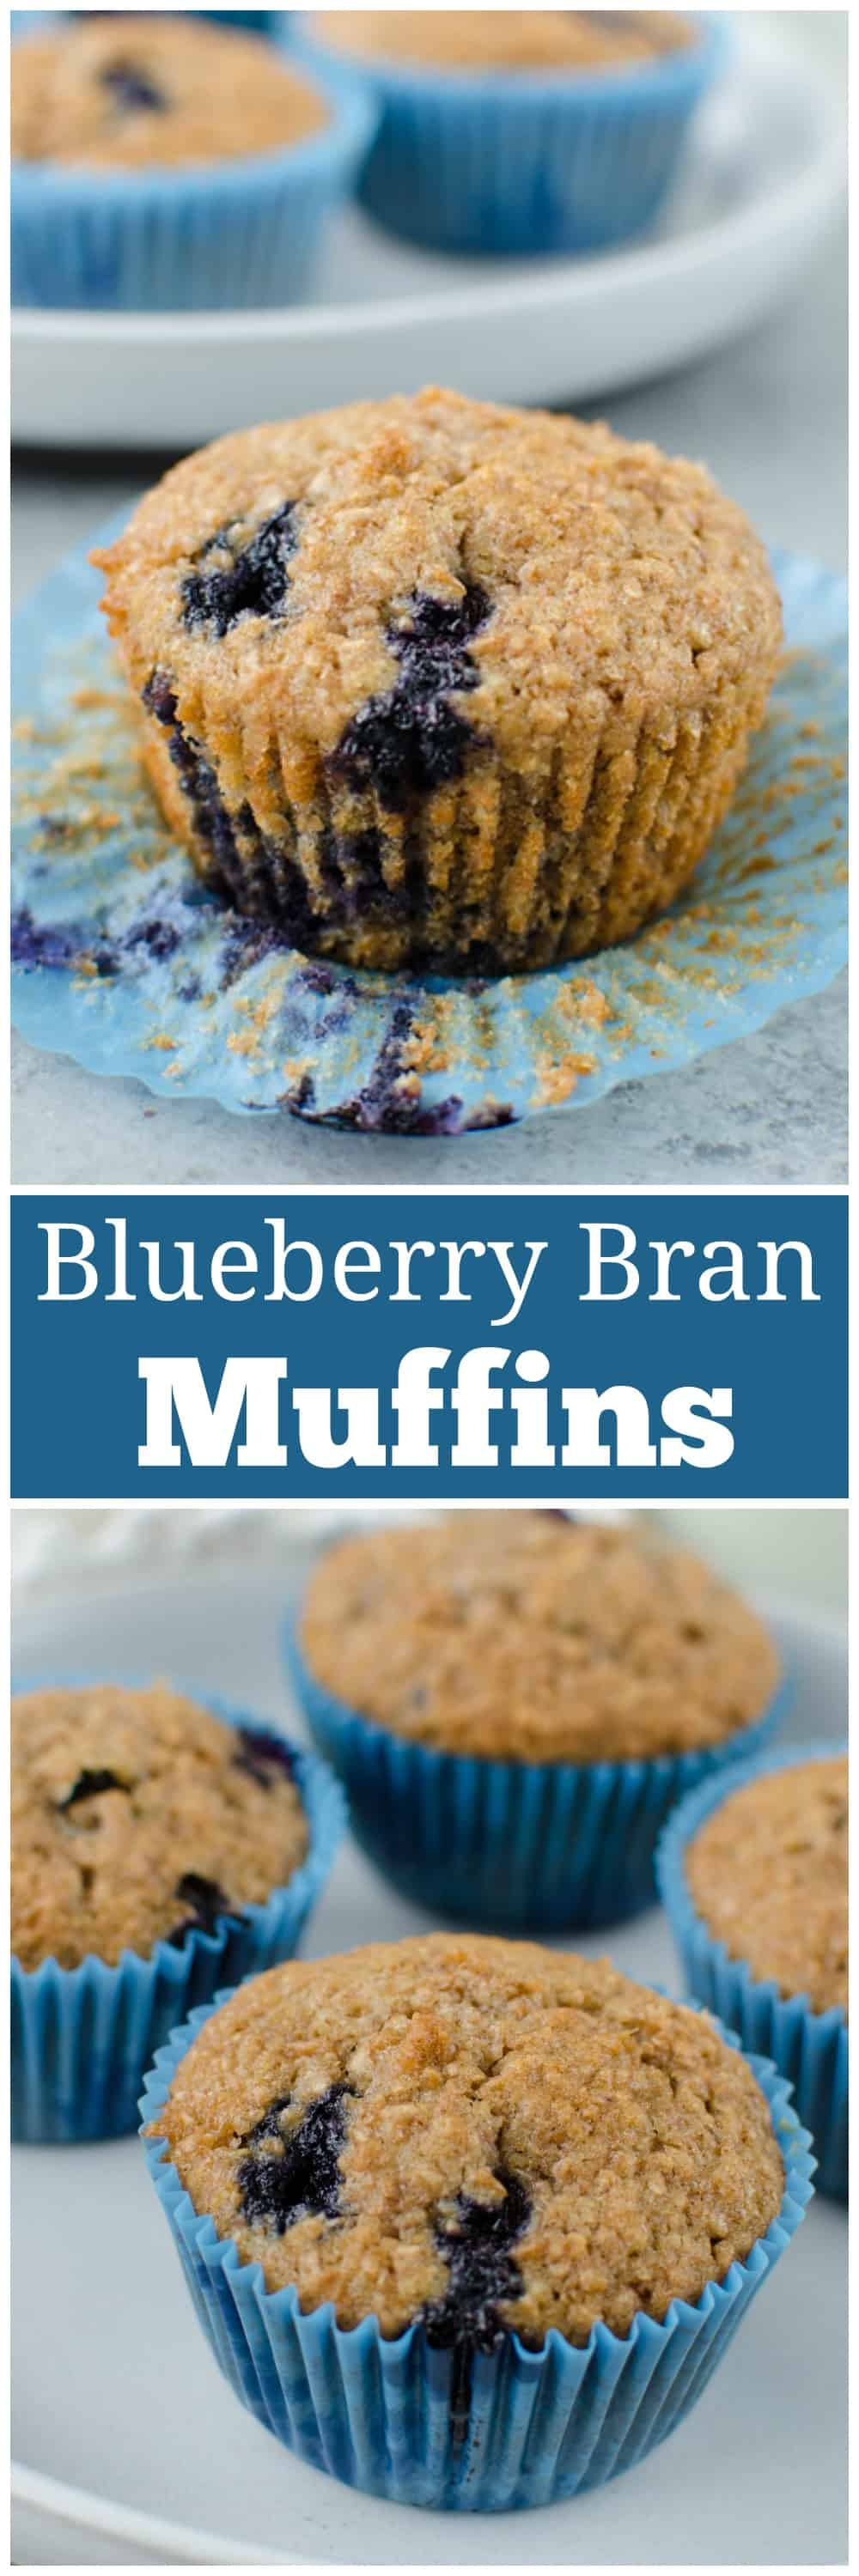 Blueberry Bran Muffins - healthy and hearty muffins made with Greek yogurt, wheat bran, and fresh blueberries. Great for breakfast meal prep!